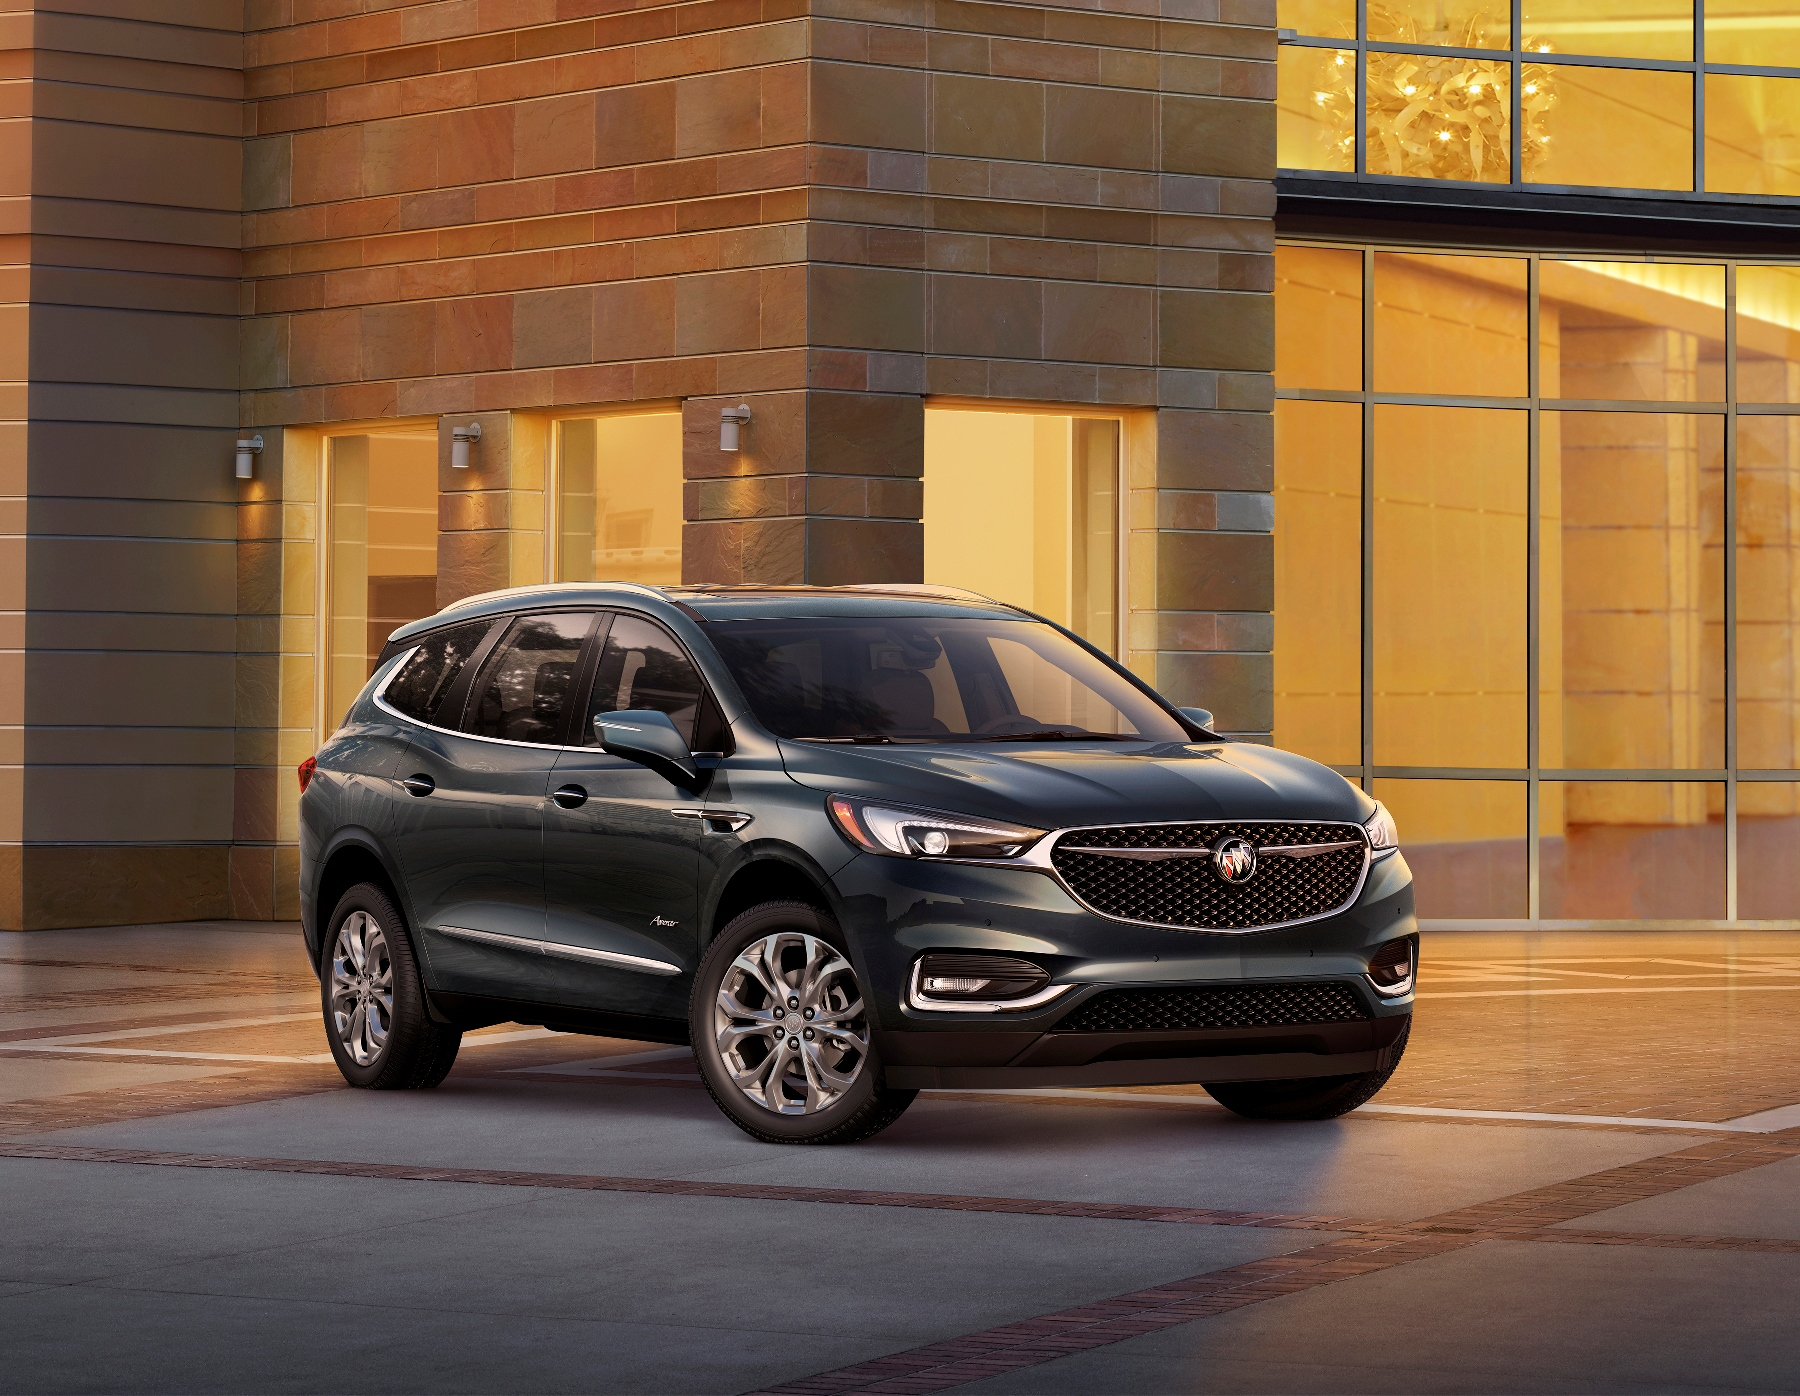 suv the contender size enclave in en trend rear mid year buick quarter motor avenir motion three of news